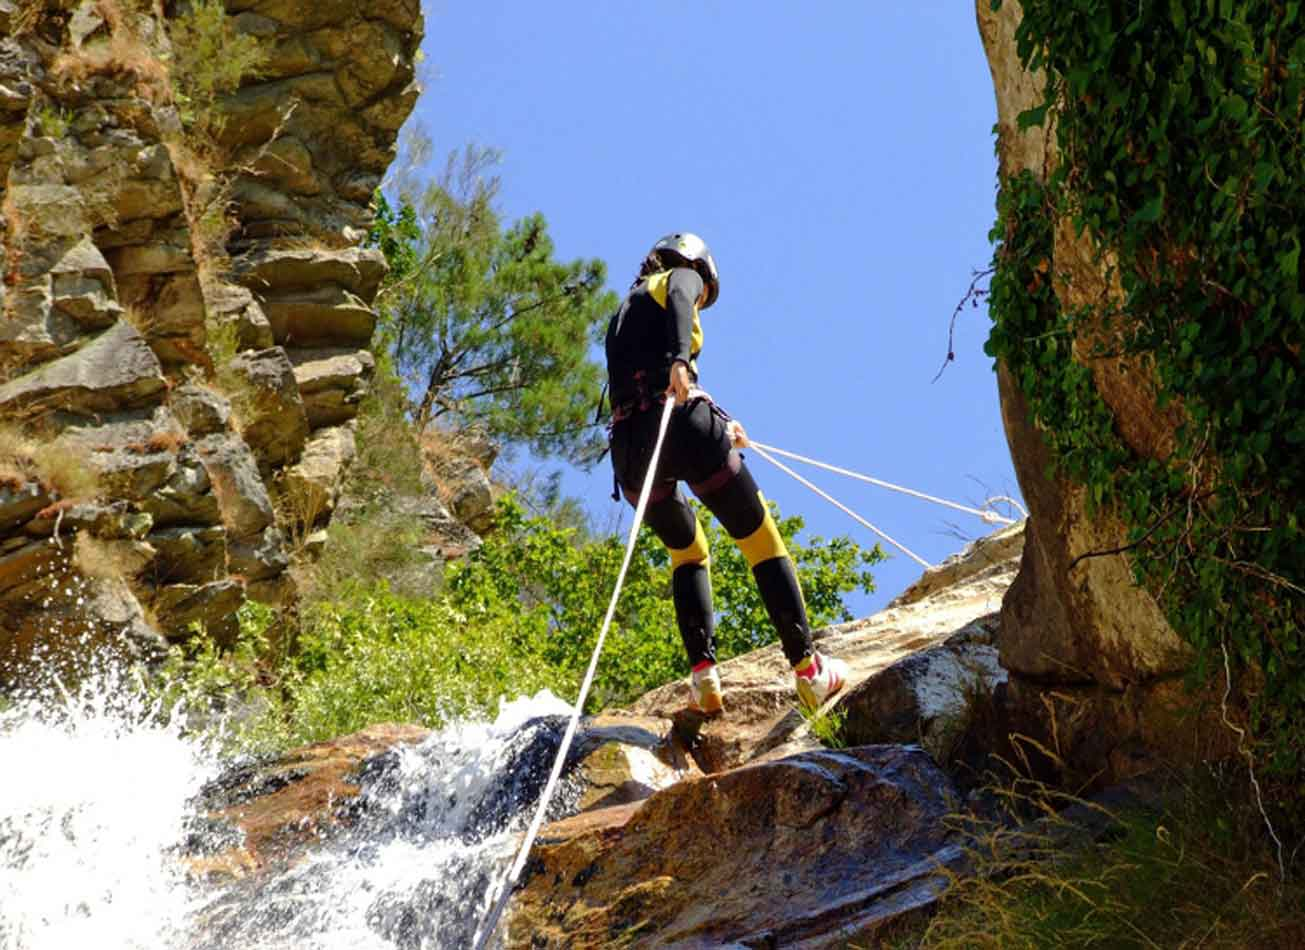 Vimigo-Recovered-Canyoning